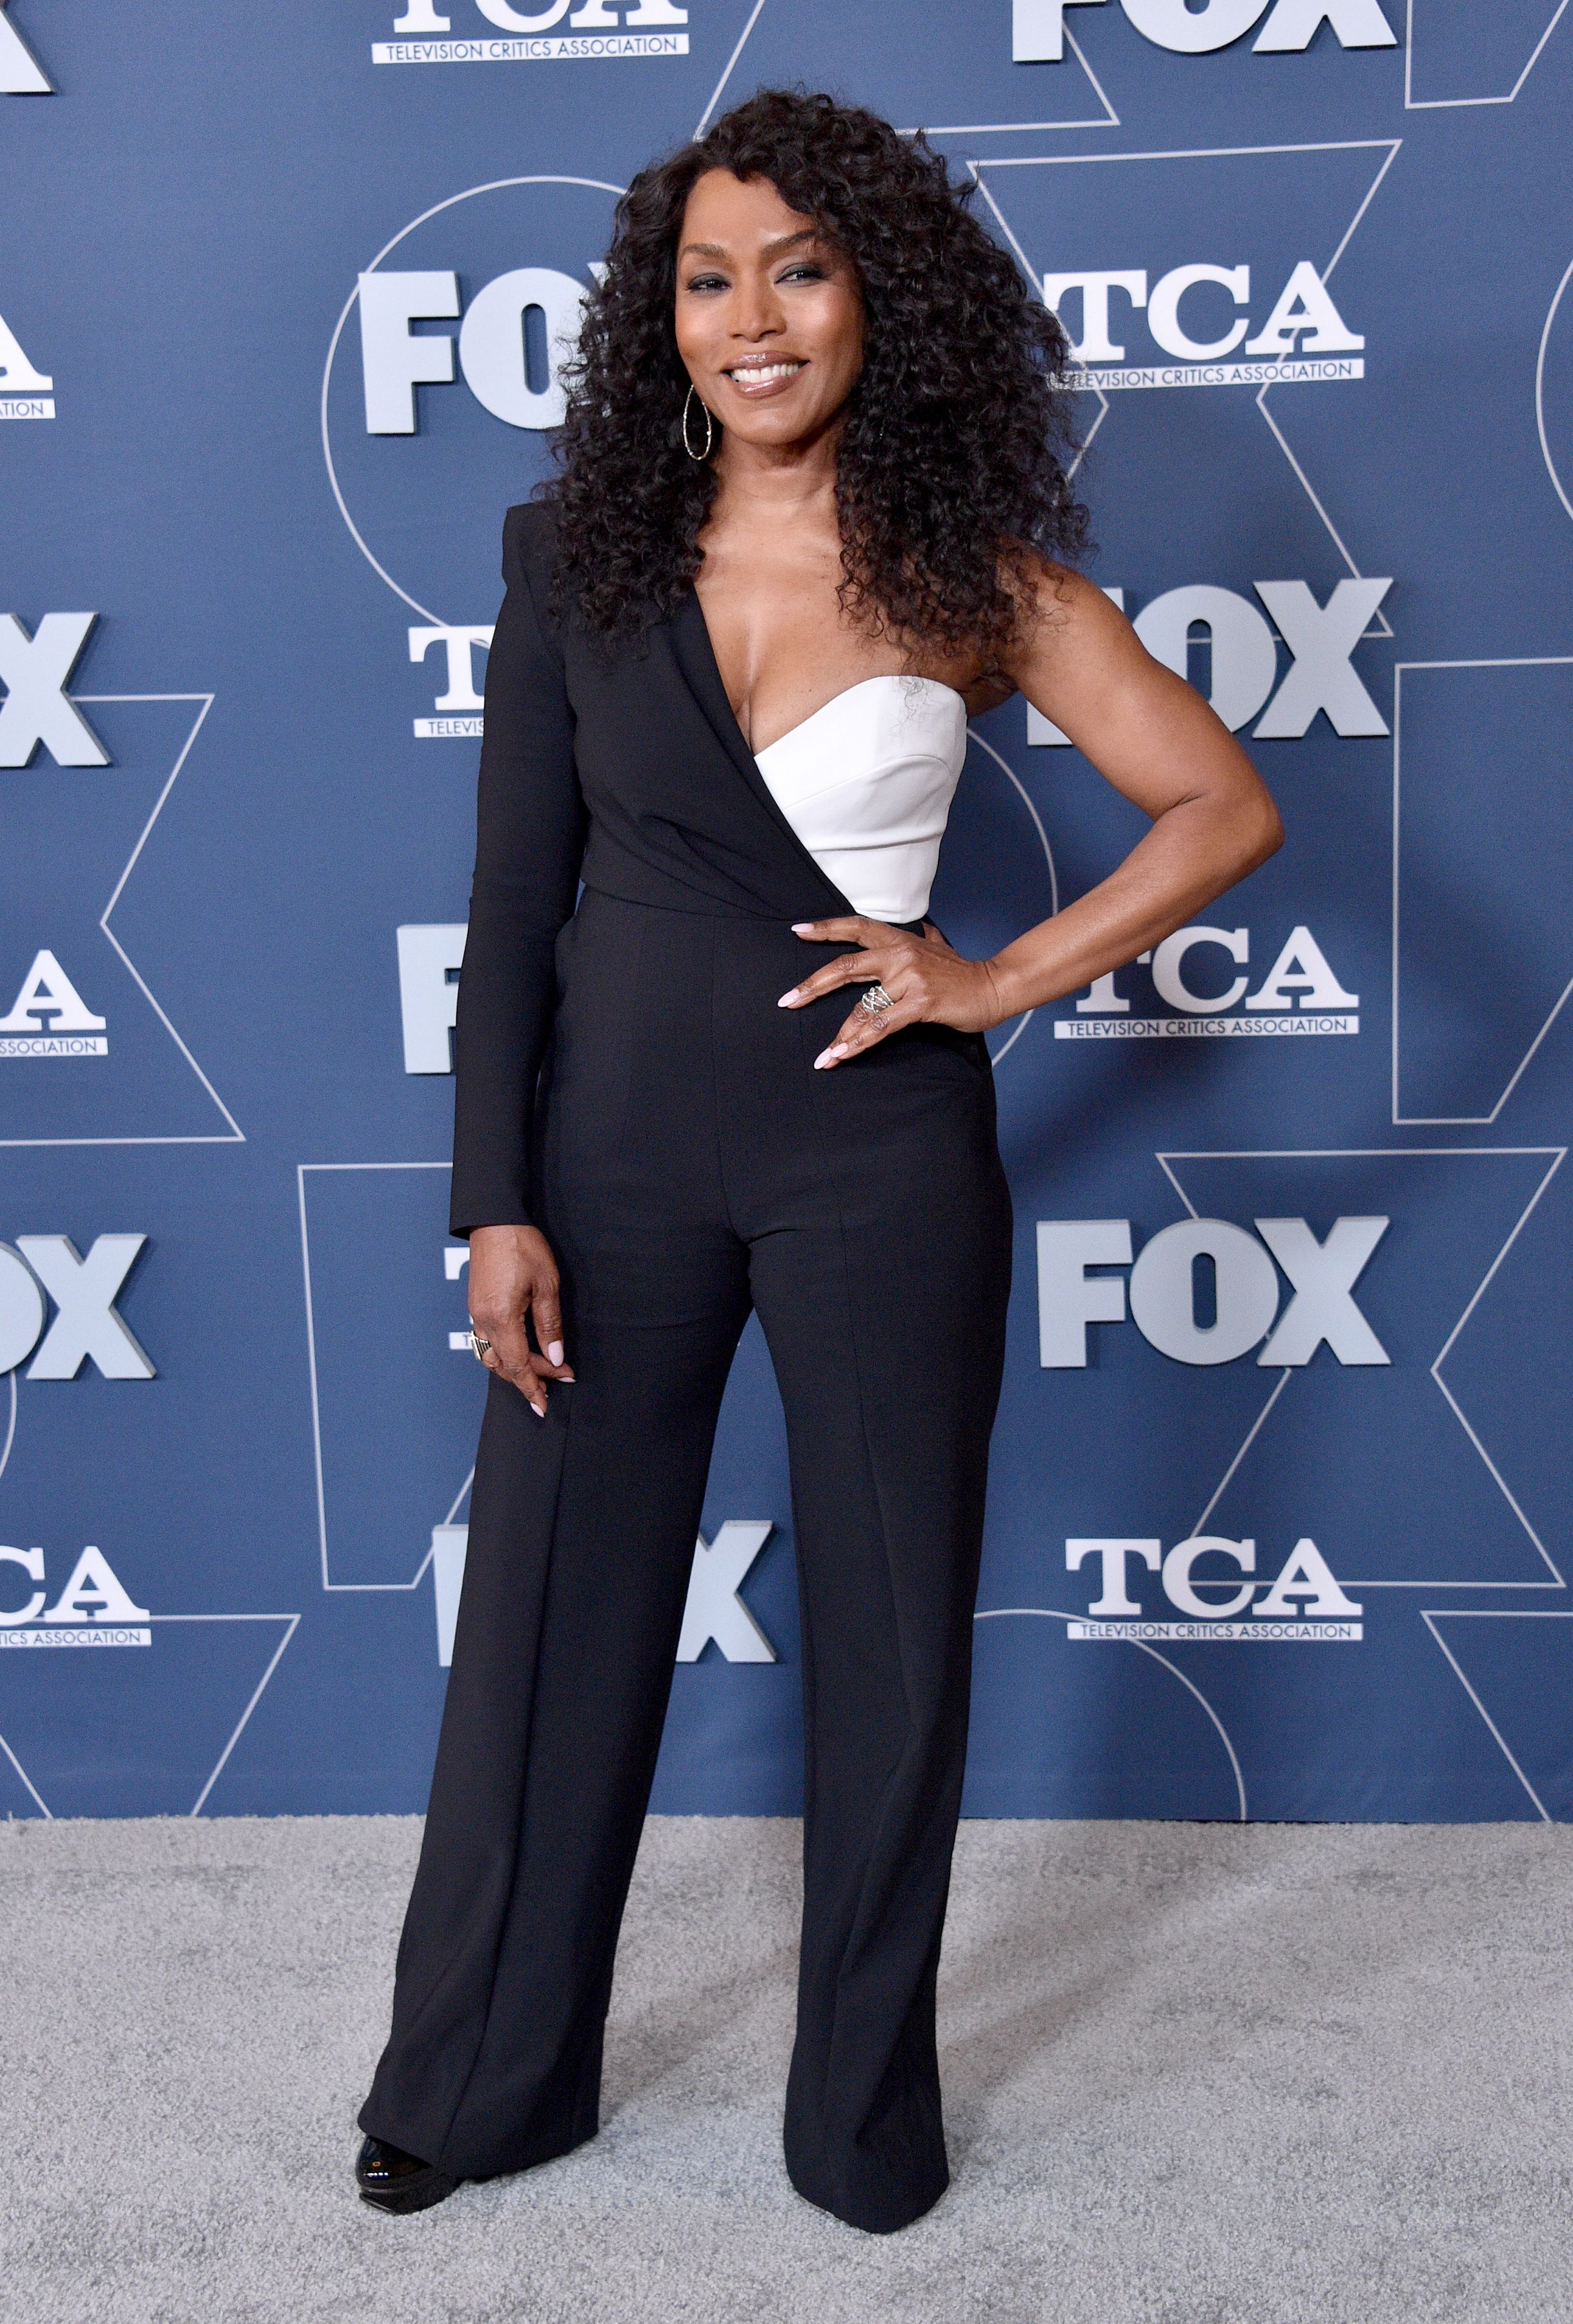 Angela Bassett during the FOX Winter TCA All Star Party at The Langham Huntington, Pasadena on January 07, 2020 in Pasadena, California. | Source: Getty Images